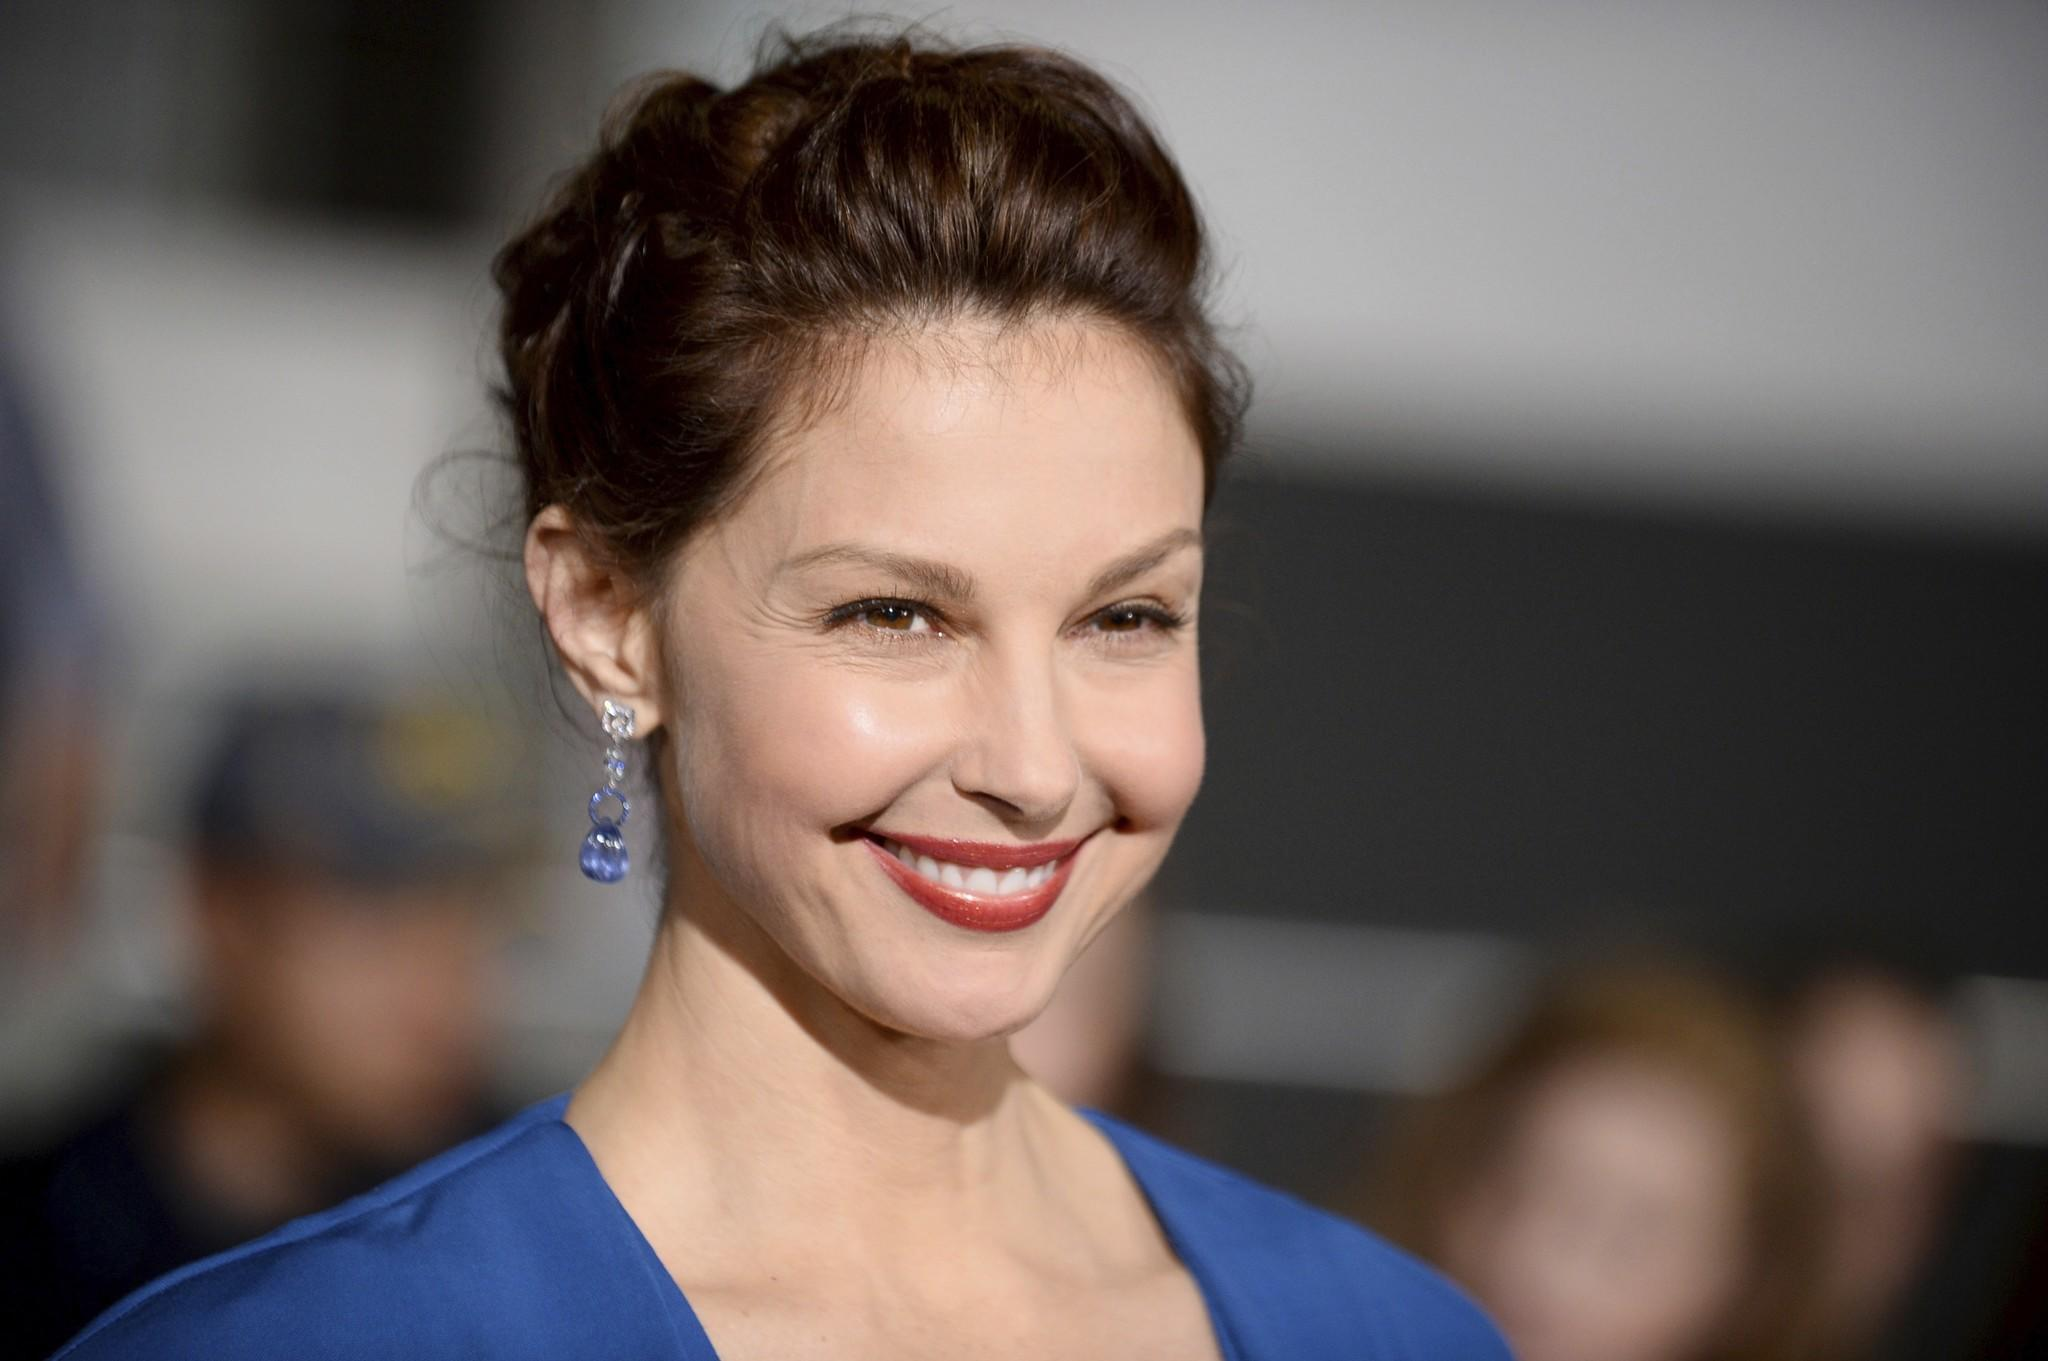 Ashley Judd will be honored by the Women's Media Center on Oct. 26 in New York City. (Jordan Strauss / Invision / Associated Press)